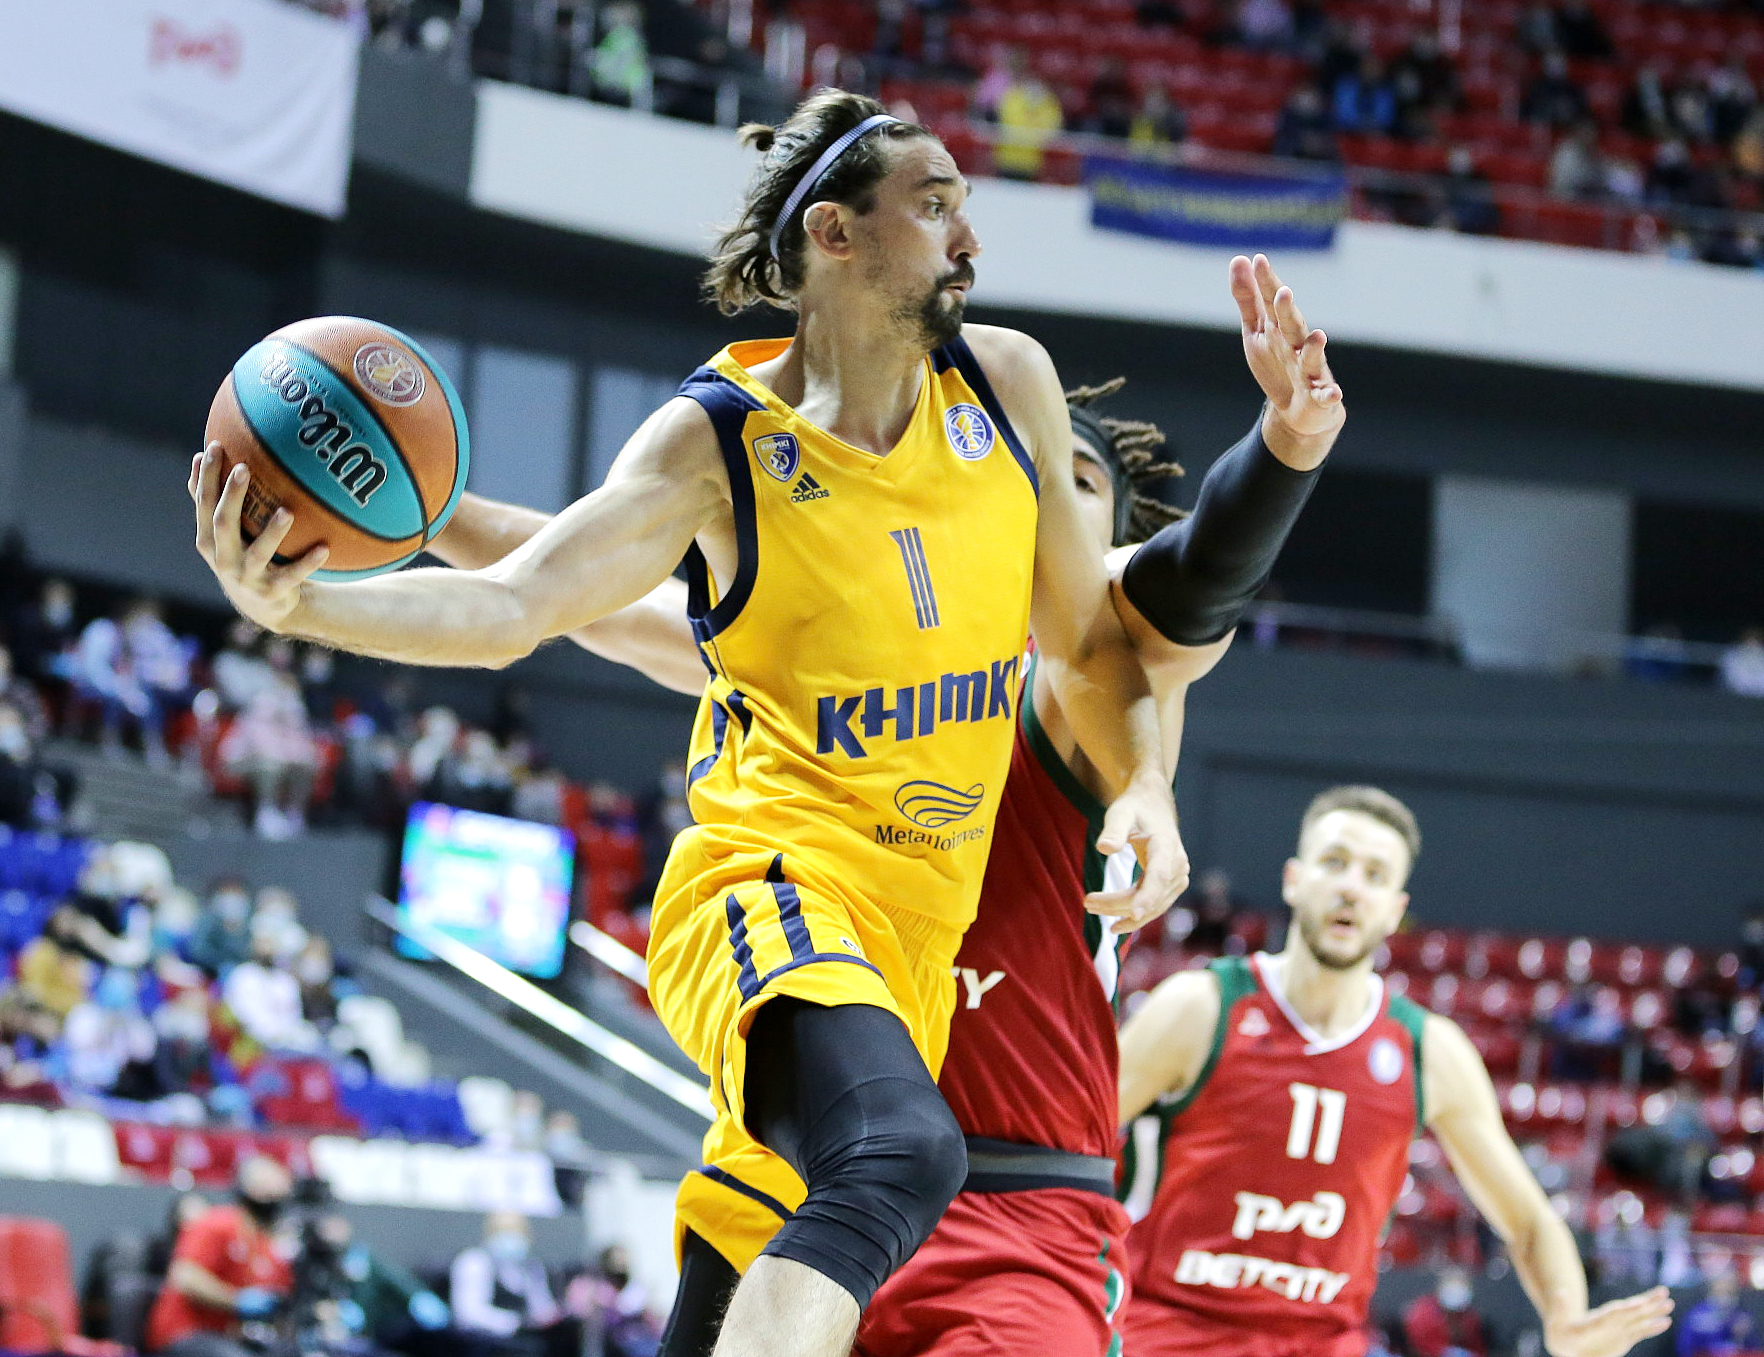 Khimki break Loko home winning streak